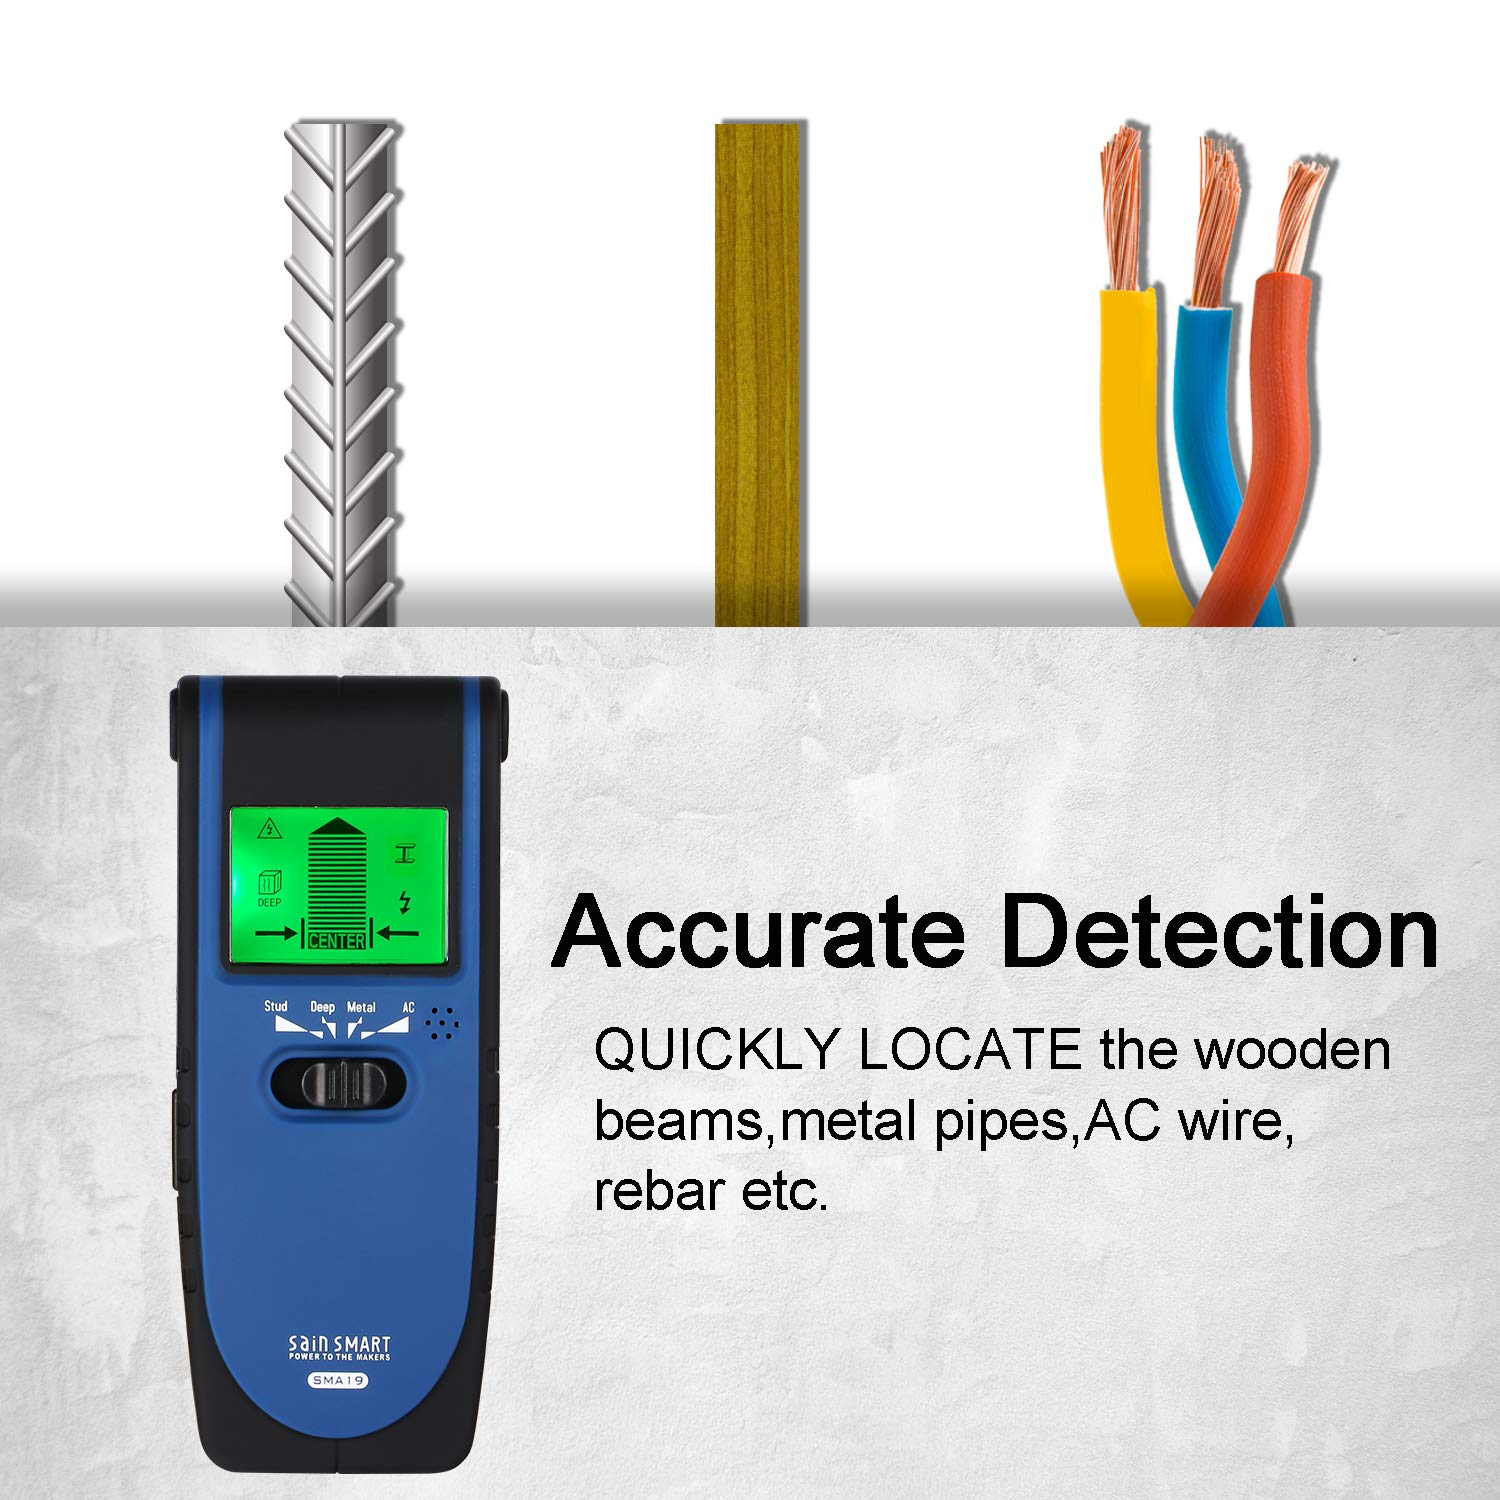 SainSmart ToolPAC SMA19 Stud Finder Wall Scanner Electric Multi-function Wall Detector for Studs/Wood/Metal/Live AC Wires Detection, with Center Finding ...